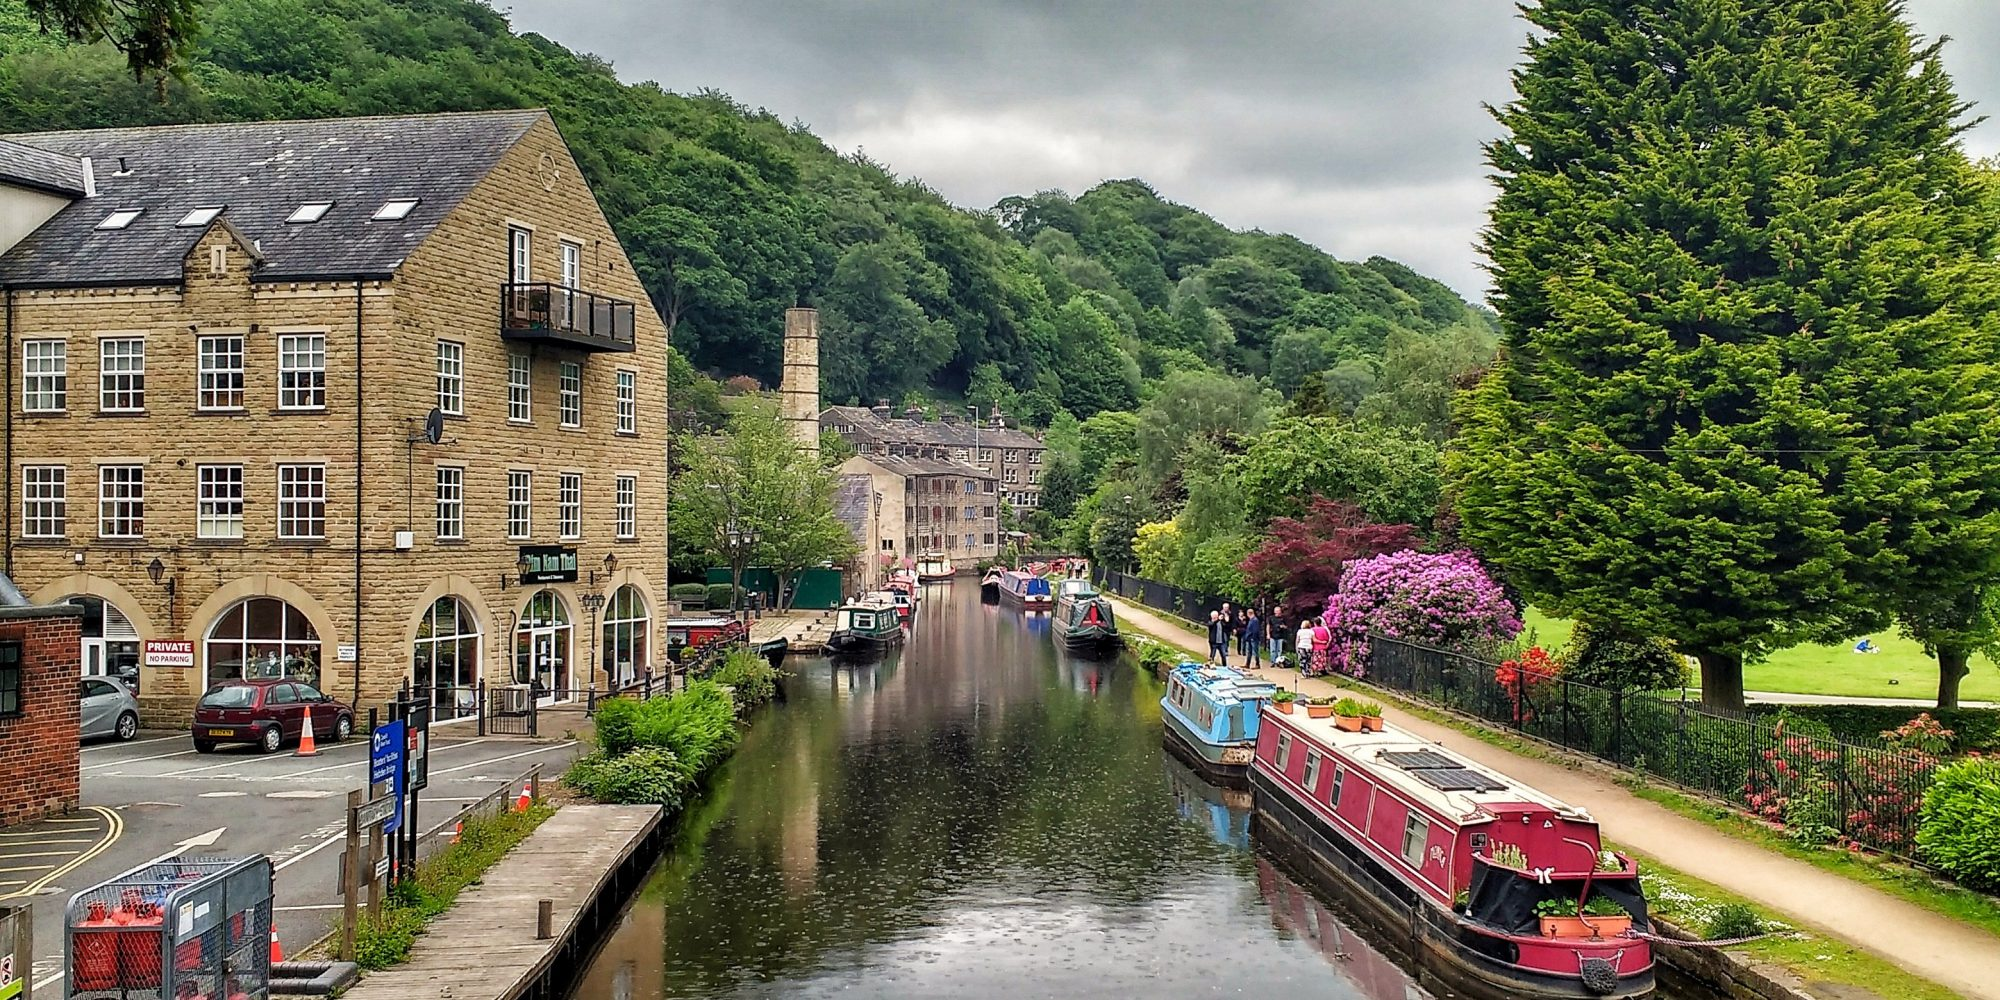 Canal with moored barges, buildings and stone chimney to the left, surrounded by trees